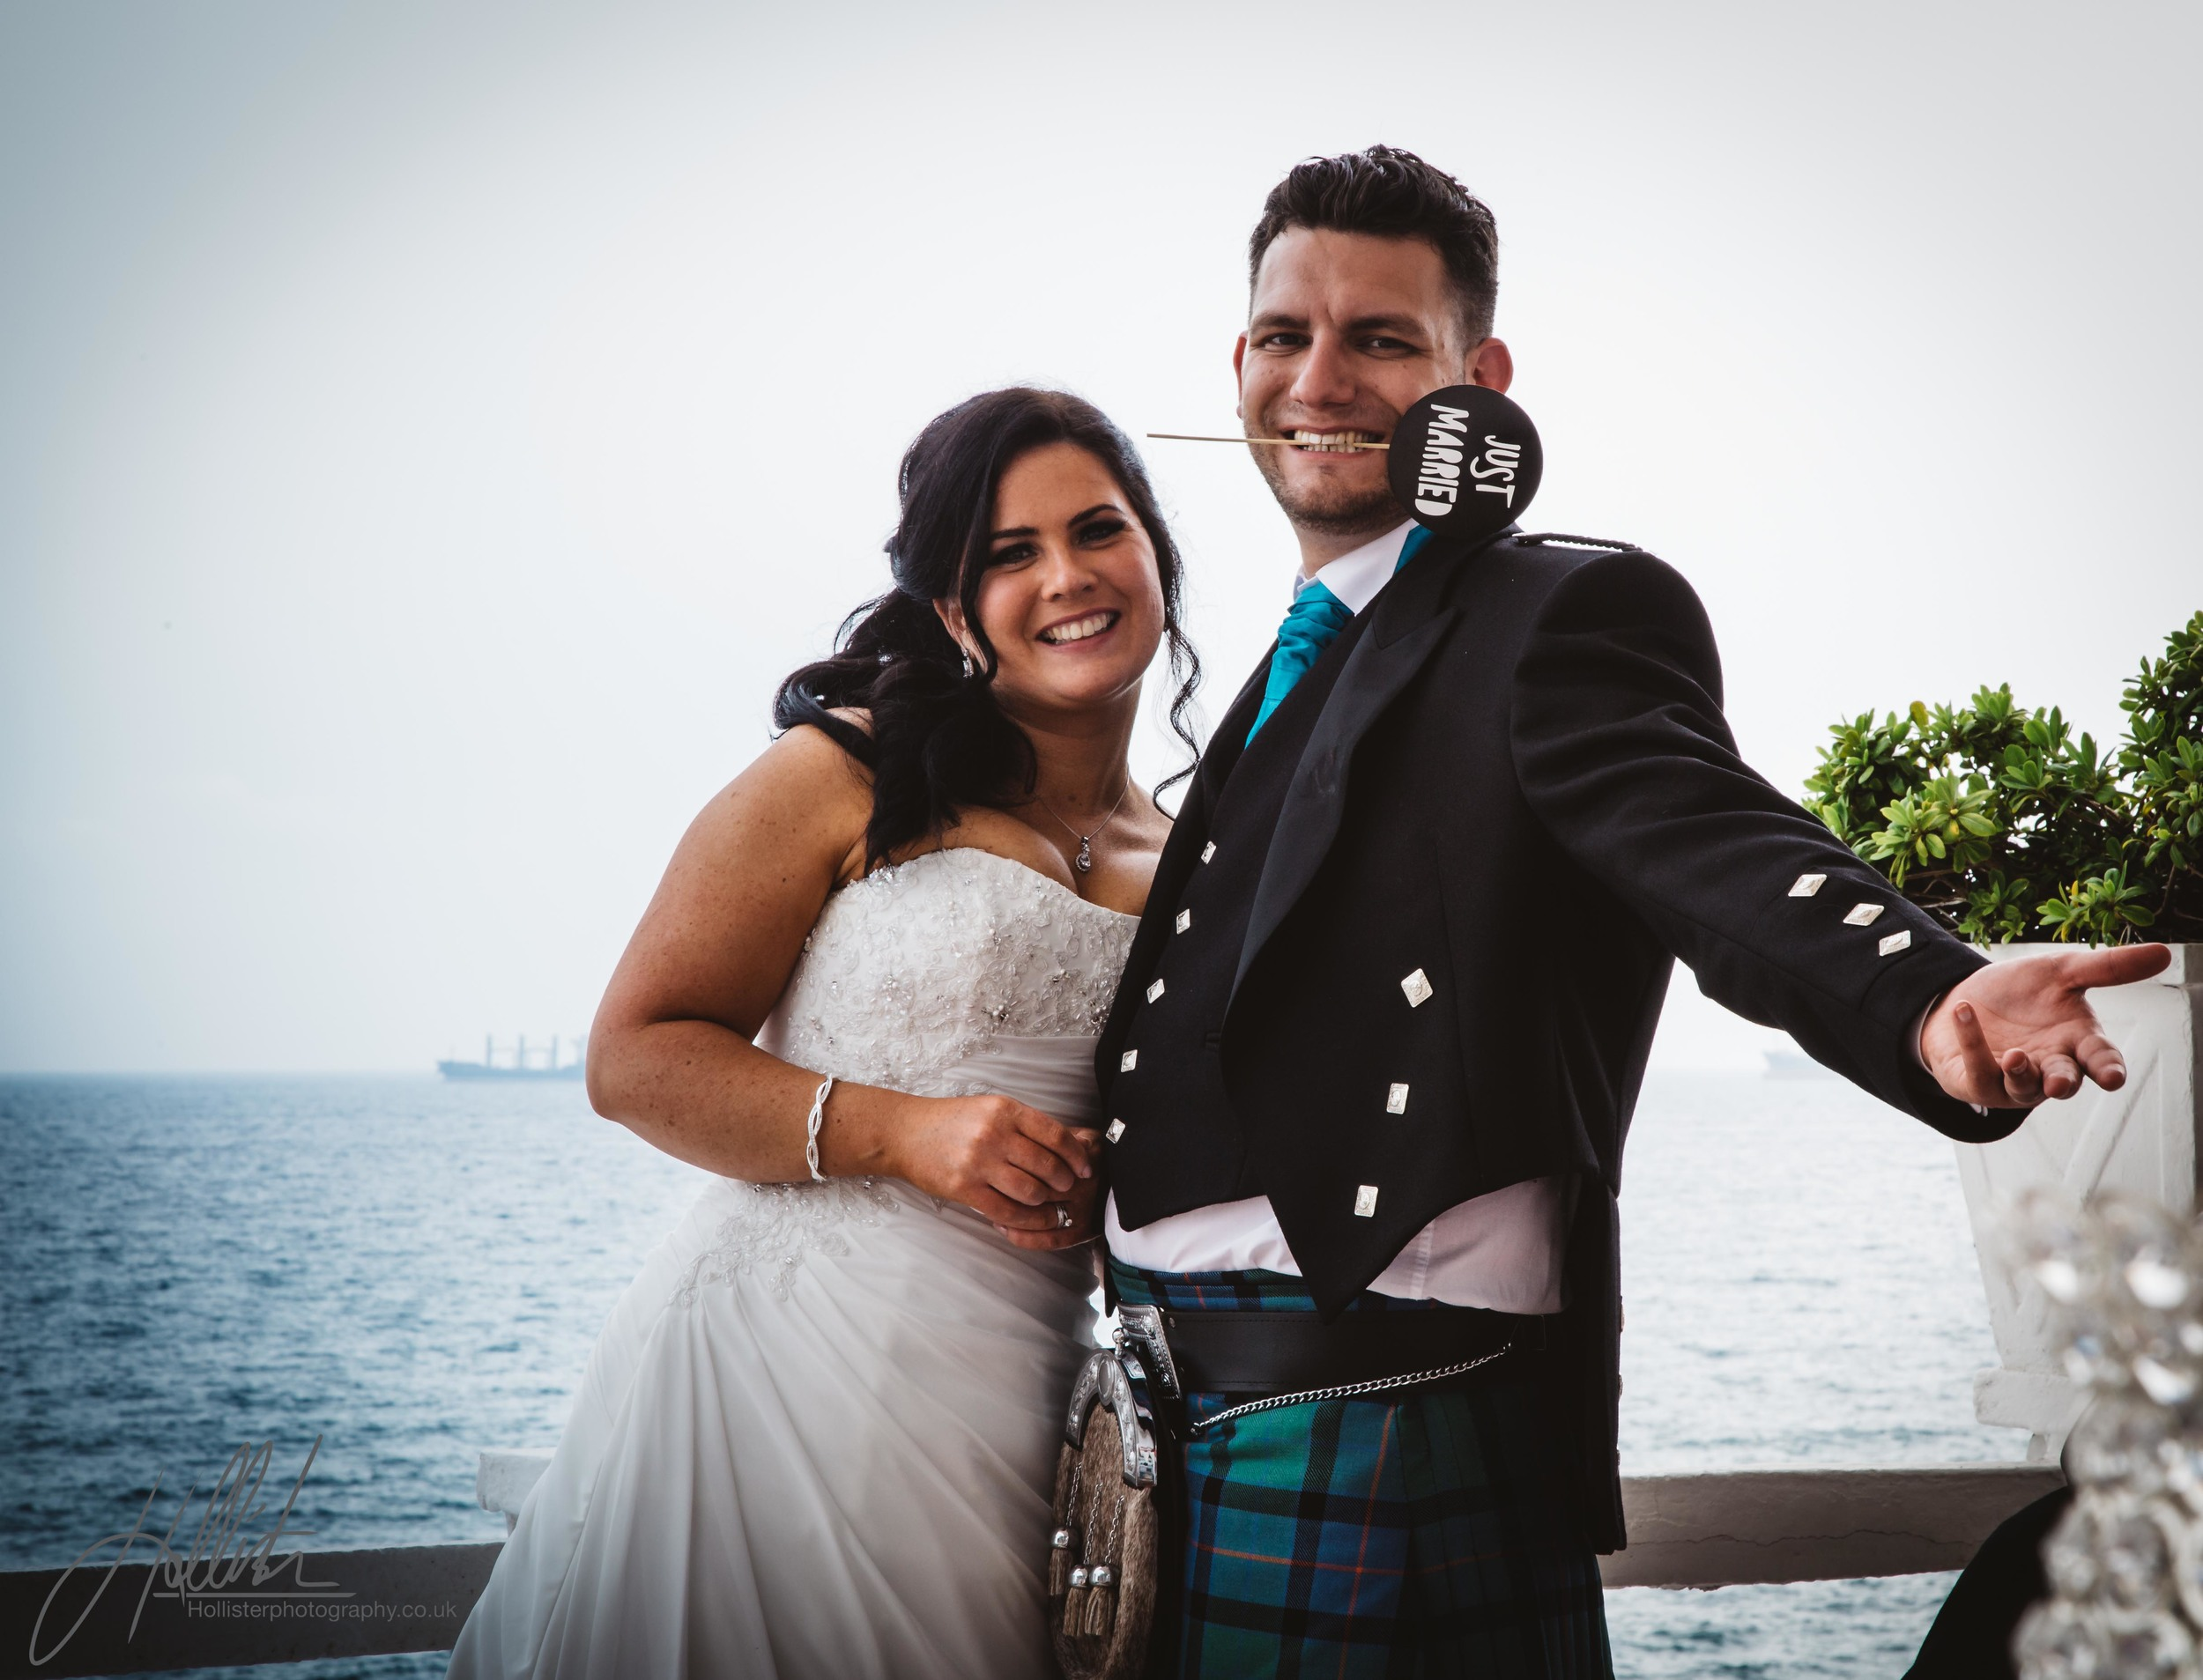 Stu and Firons Gibraltan Wedding june 6th 2015  WATERMARKED-58.jpg